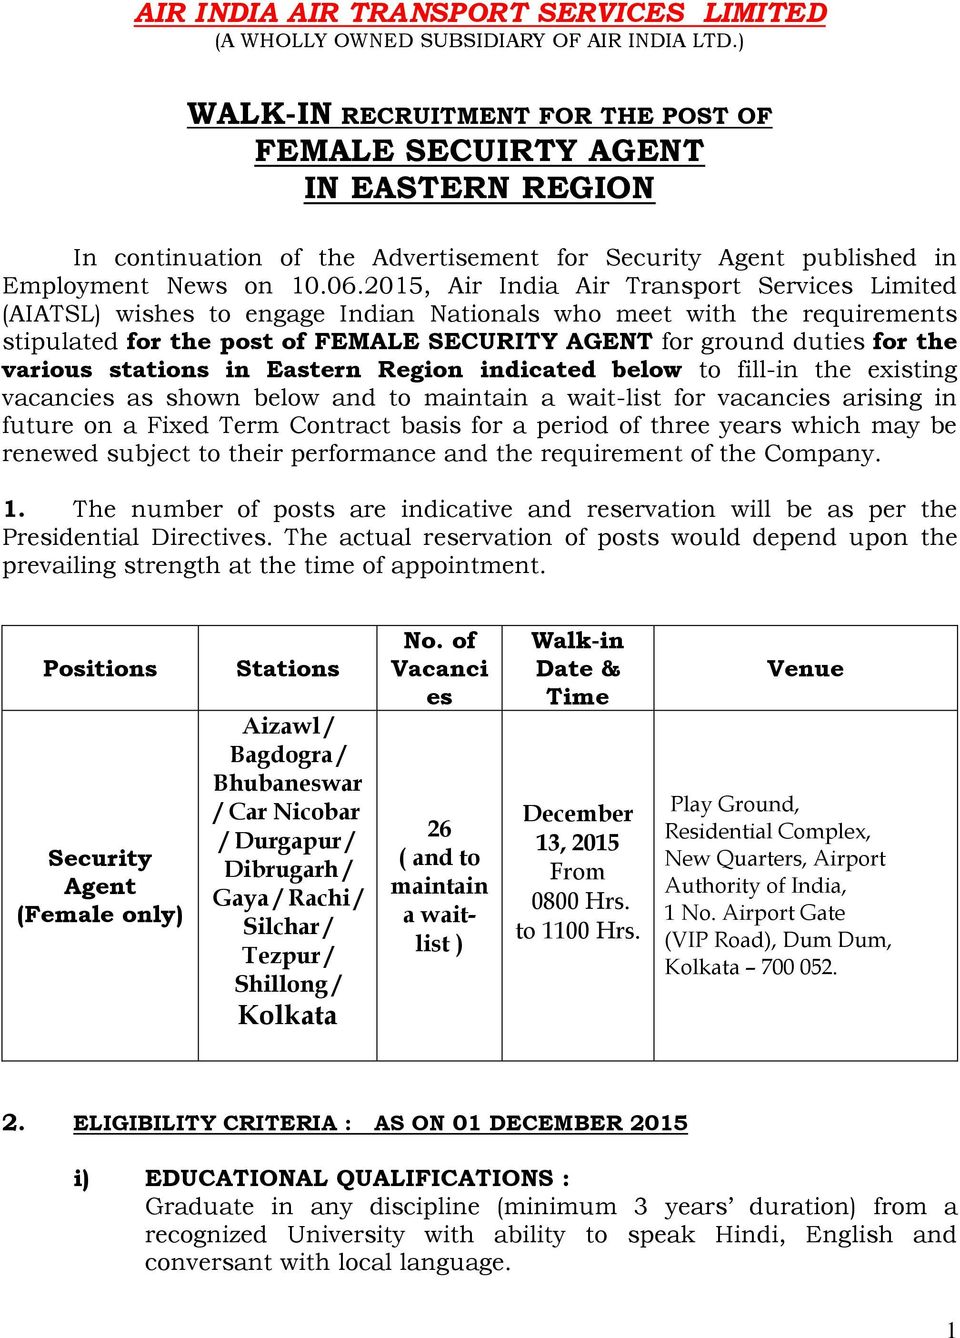 2015, Air India Air Transport Services Limited (AIATSL) wishes to engage Indian Nationals who meet with the requirements stipulated for the post of FEMALE SECURITY AGENT for ground duties for the